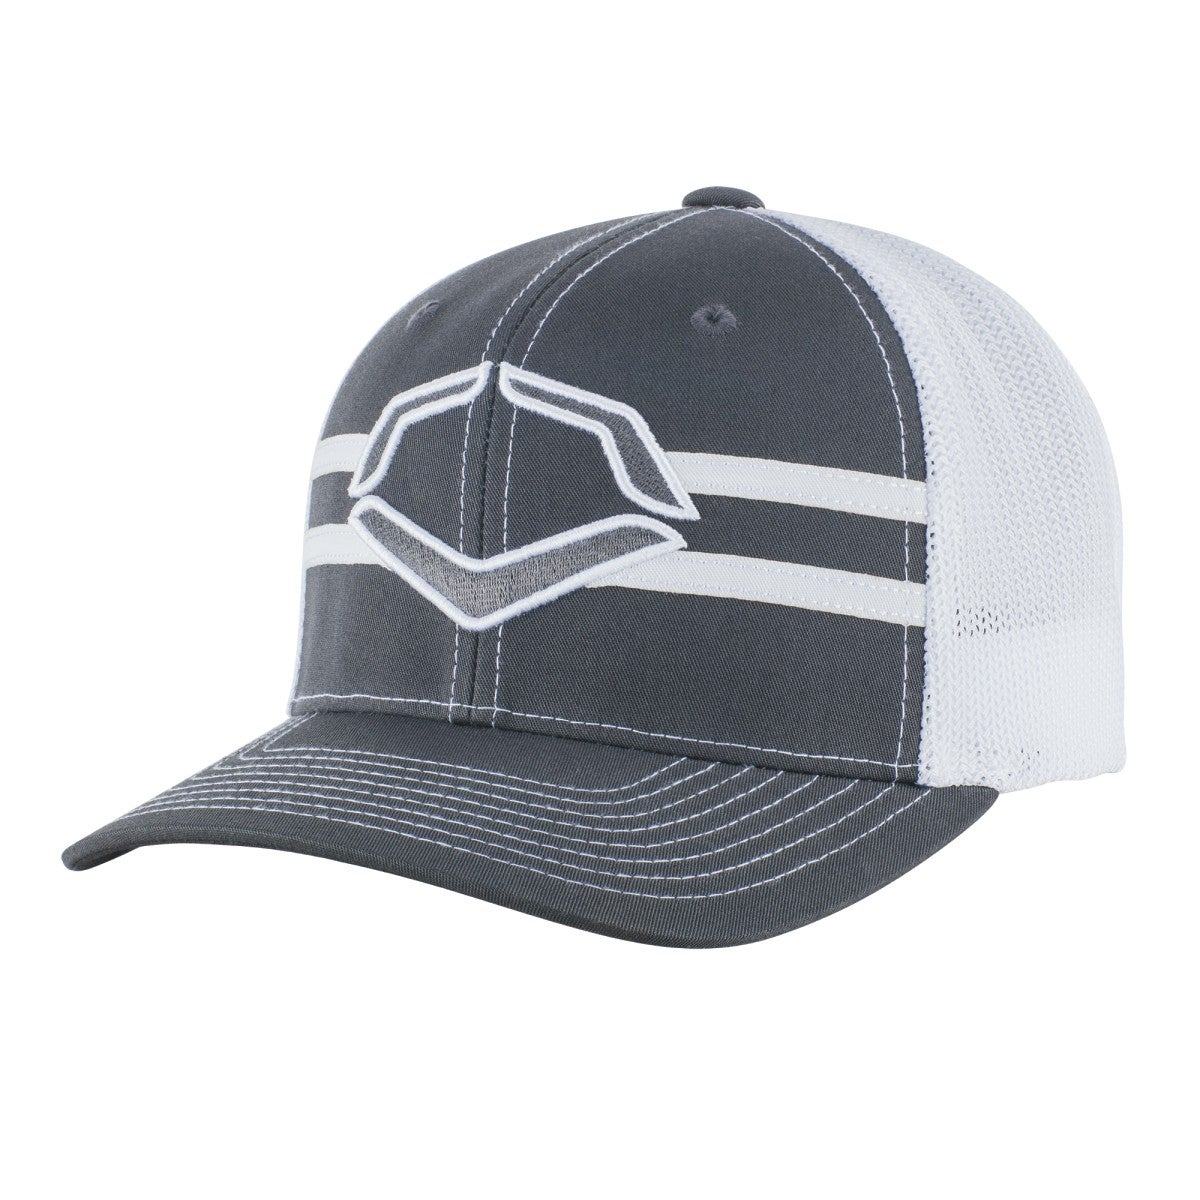 Flex Fit V Grandstand Hat